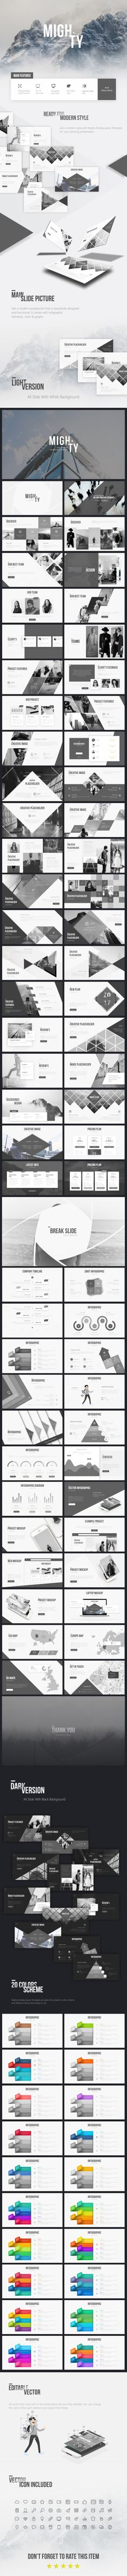 Mighty Multipurpose Presentation Template - #Business #PowerPoint #Templates Download here: https://graphicriver.net/item/mighty-multipurpose-presentation-template/19489648?ref=alena994